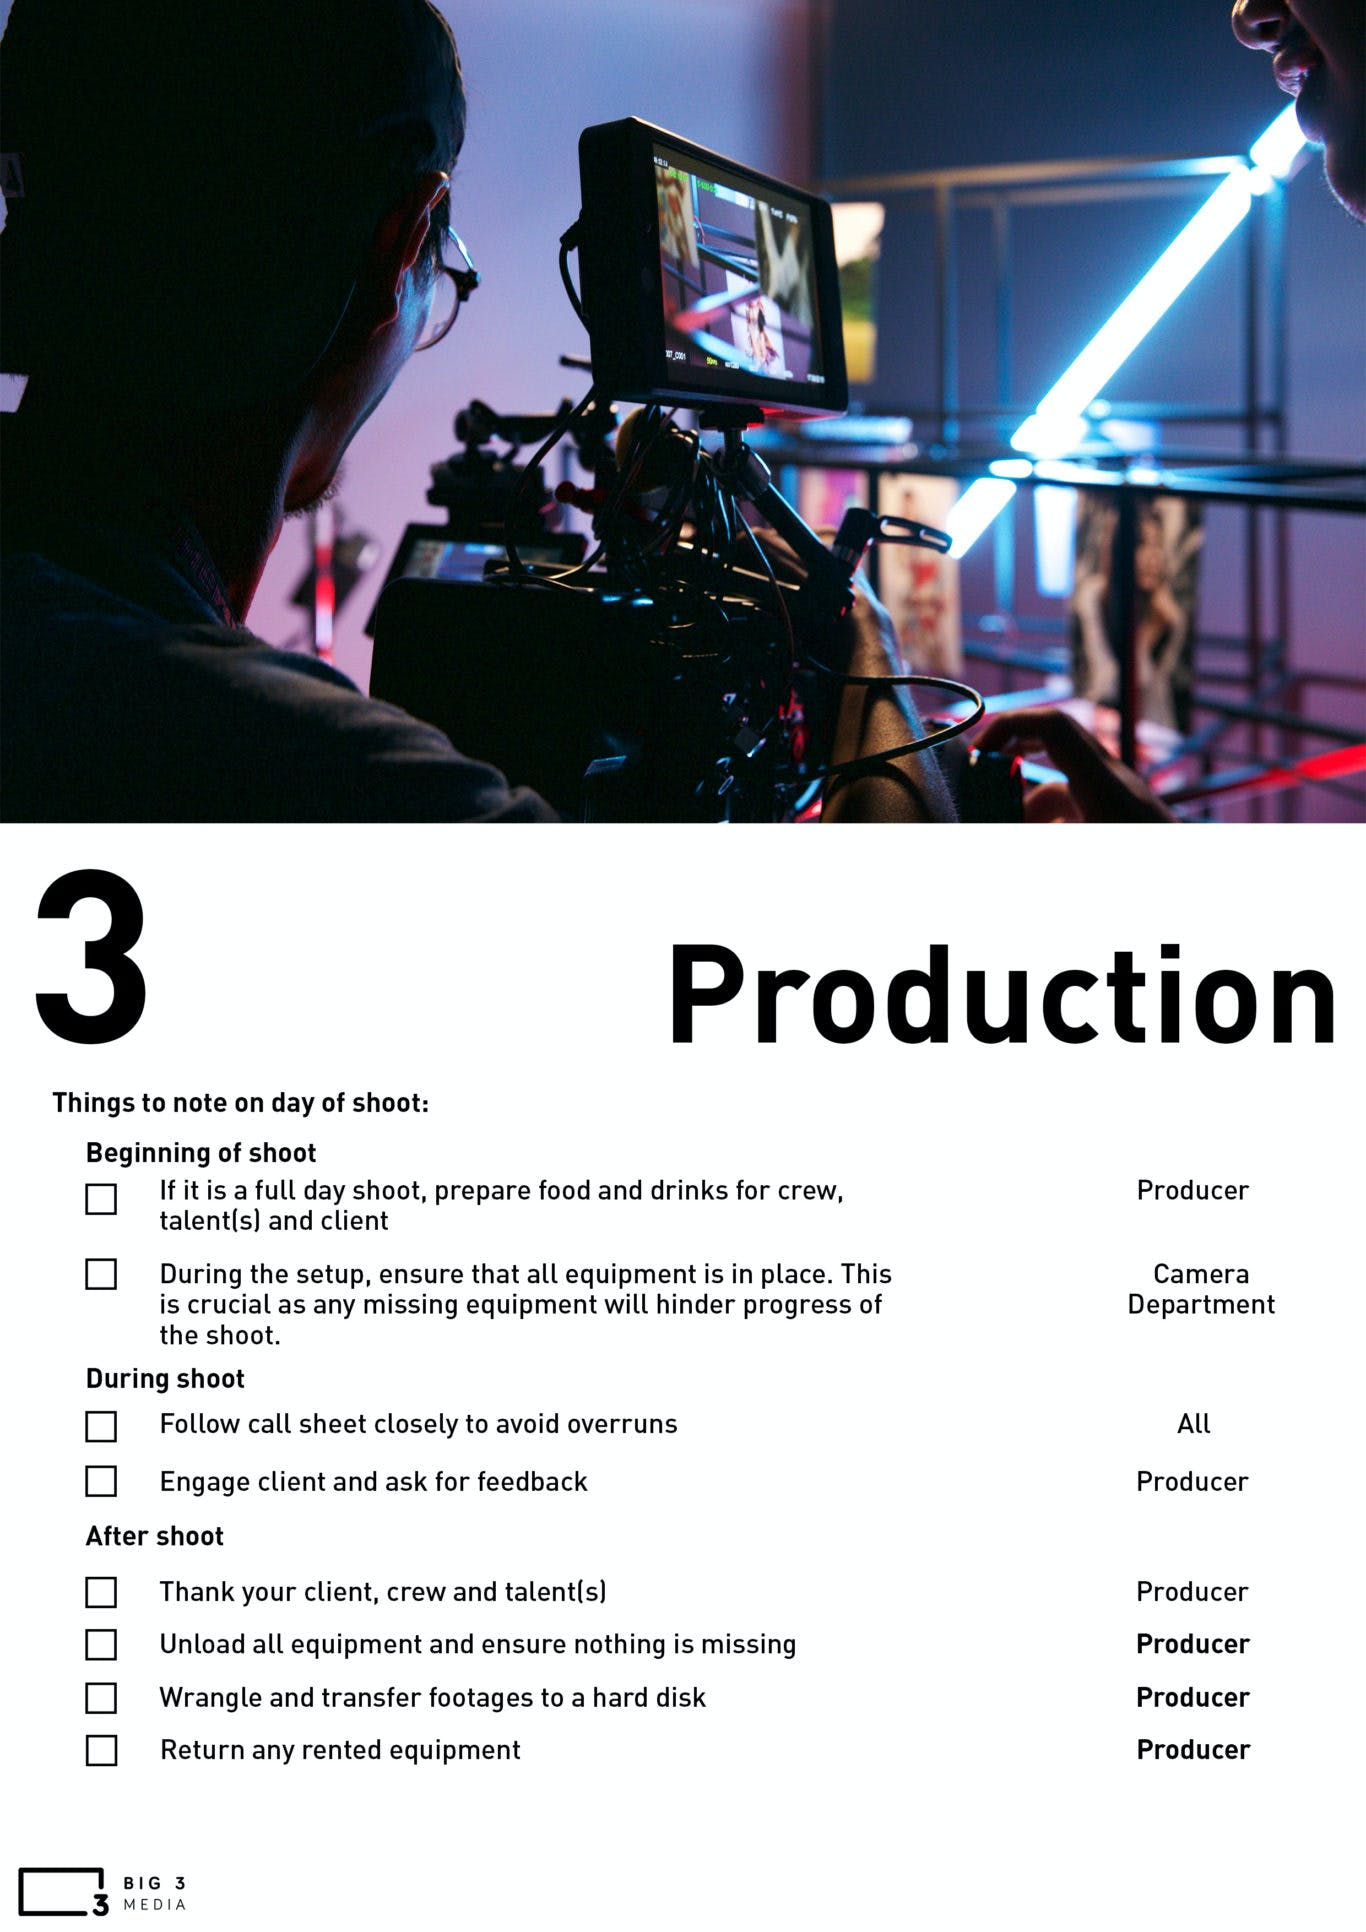 Checklist for Production